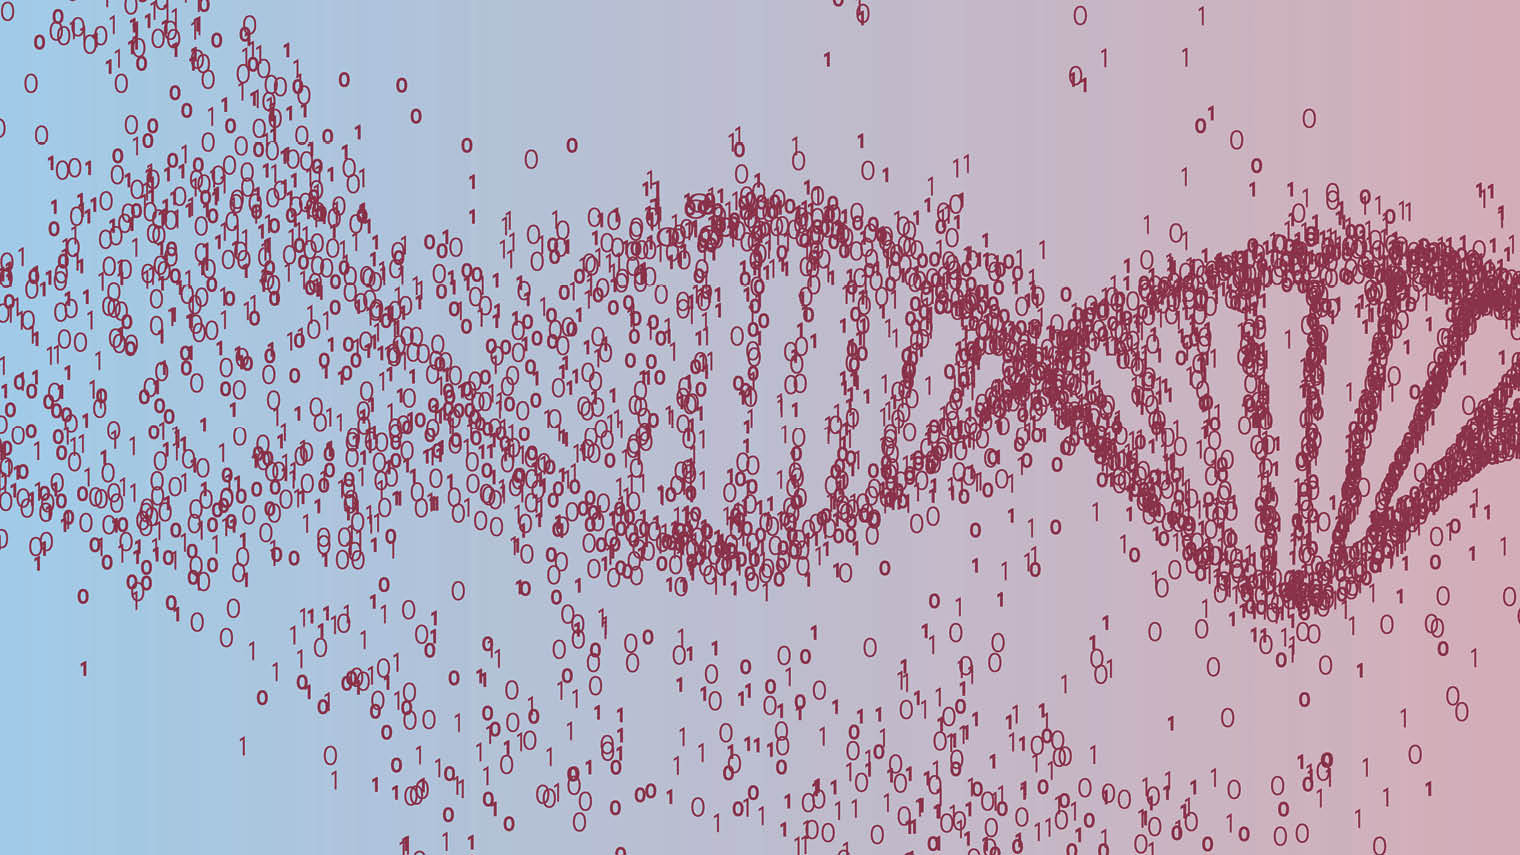 Genome sequencing can provide the key to cancer prevention